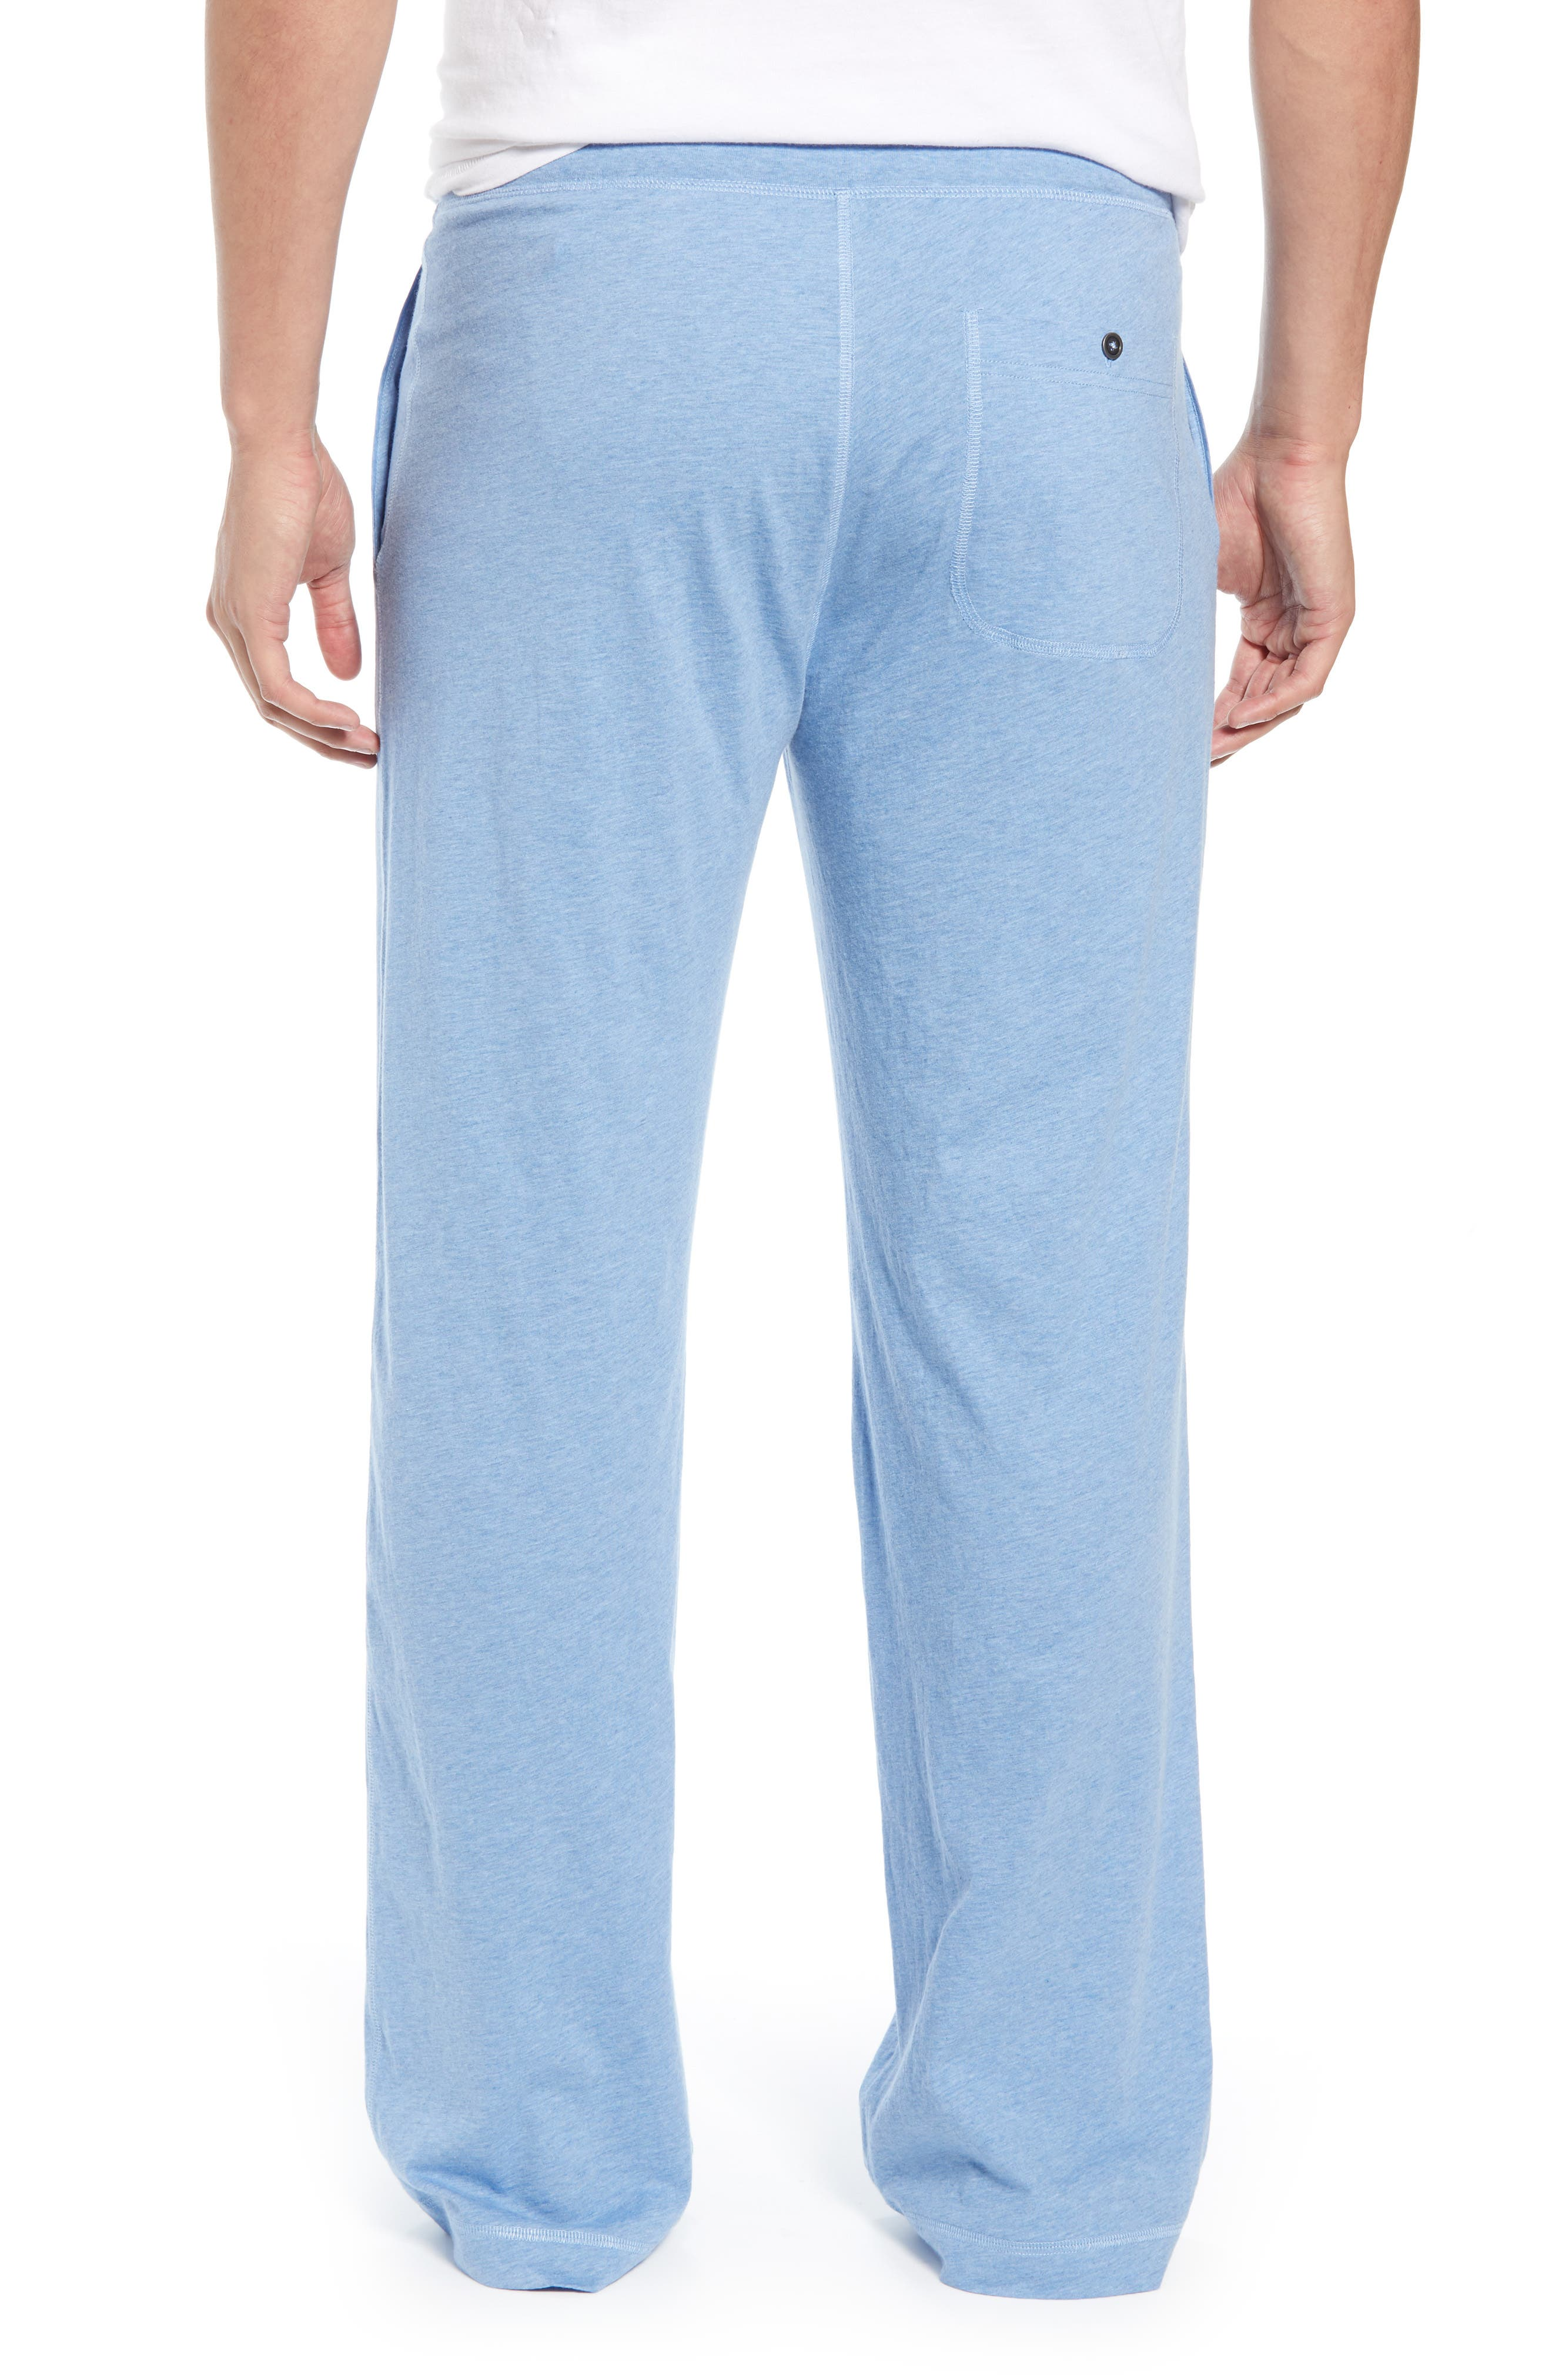 DANIEL BUCHLER, Peruvian Pima Lightweight Cotton Lounge Pants, Alternate thumbnail 2, color, BLUE HEATHER